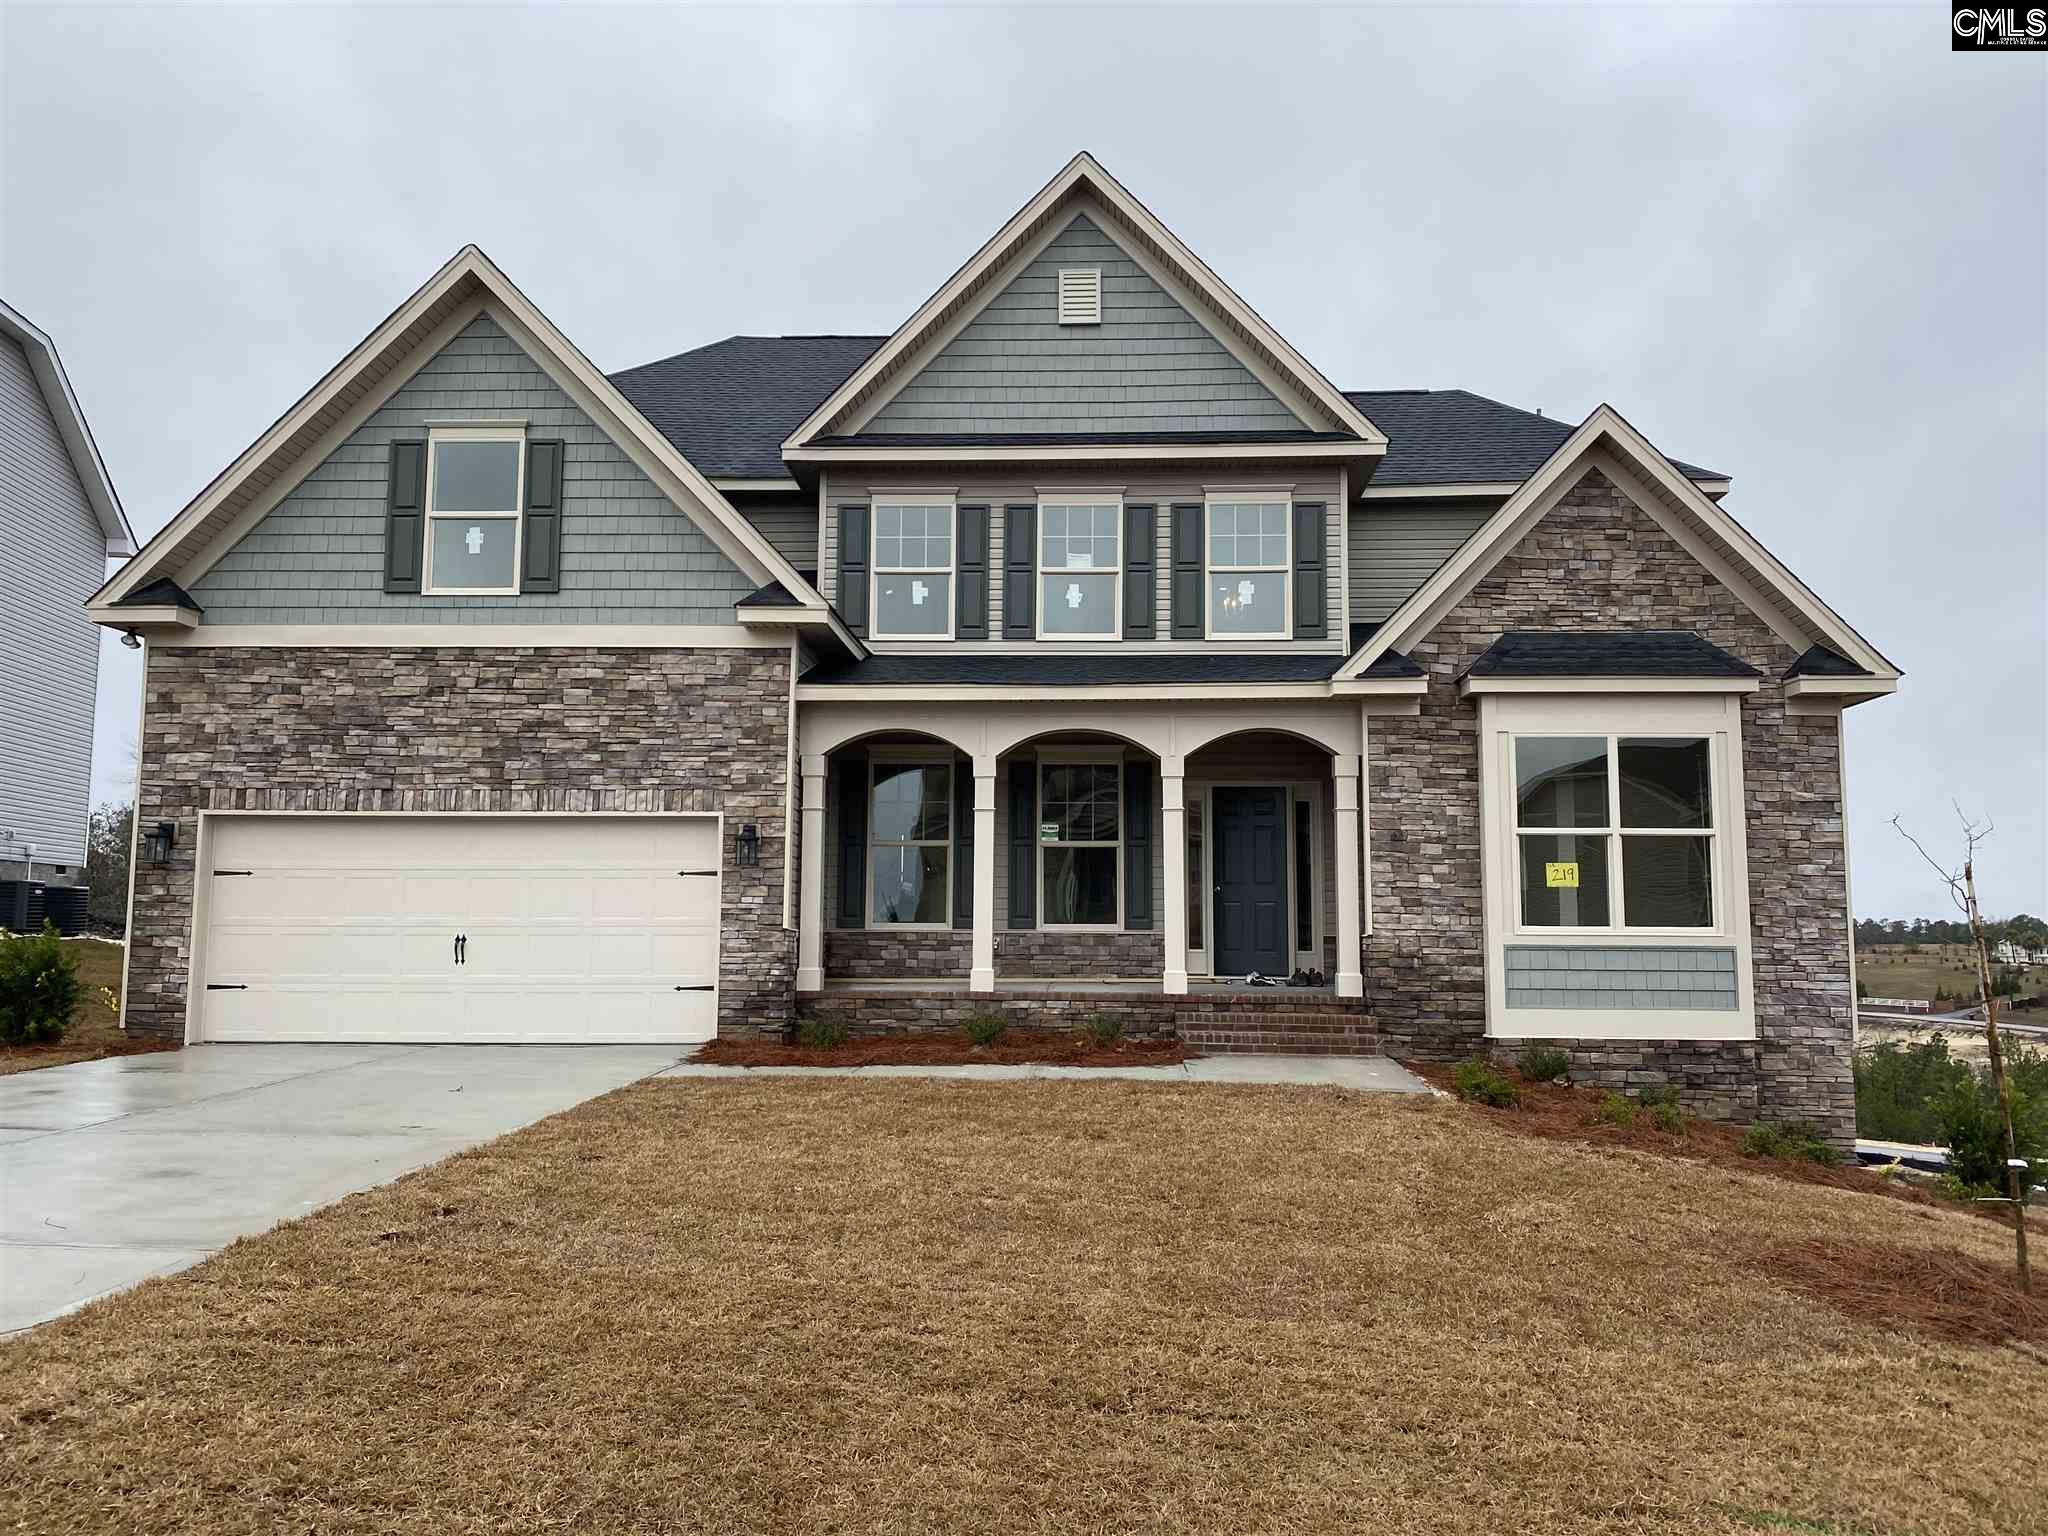 111 Kelsney Ridge Elgin, SC 29045